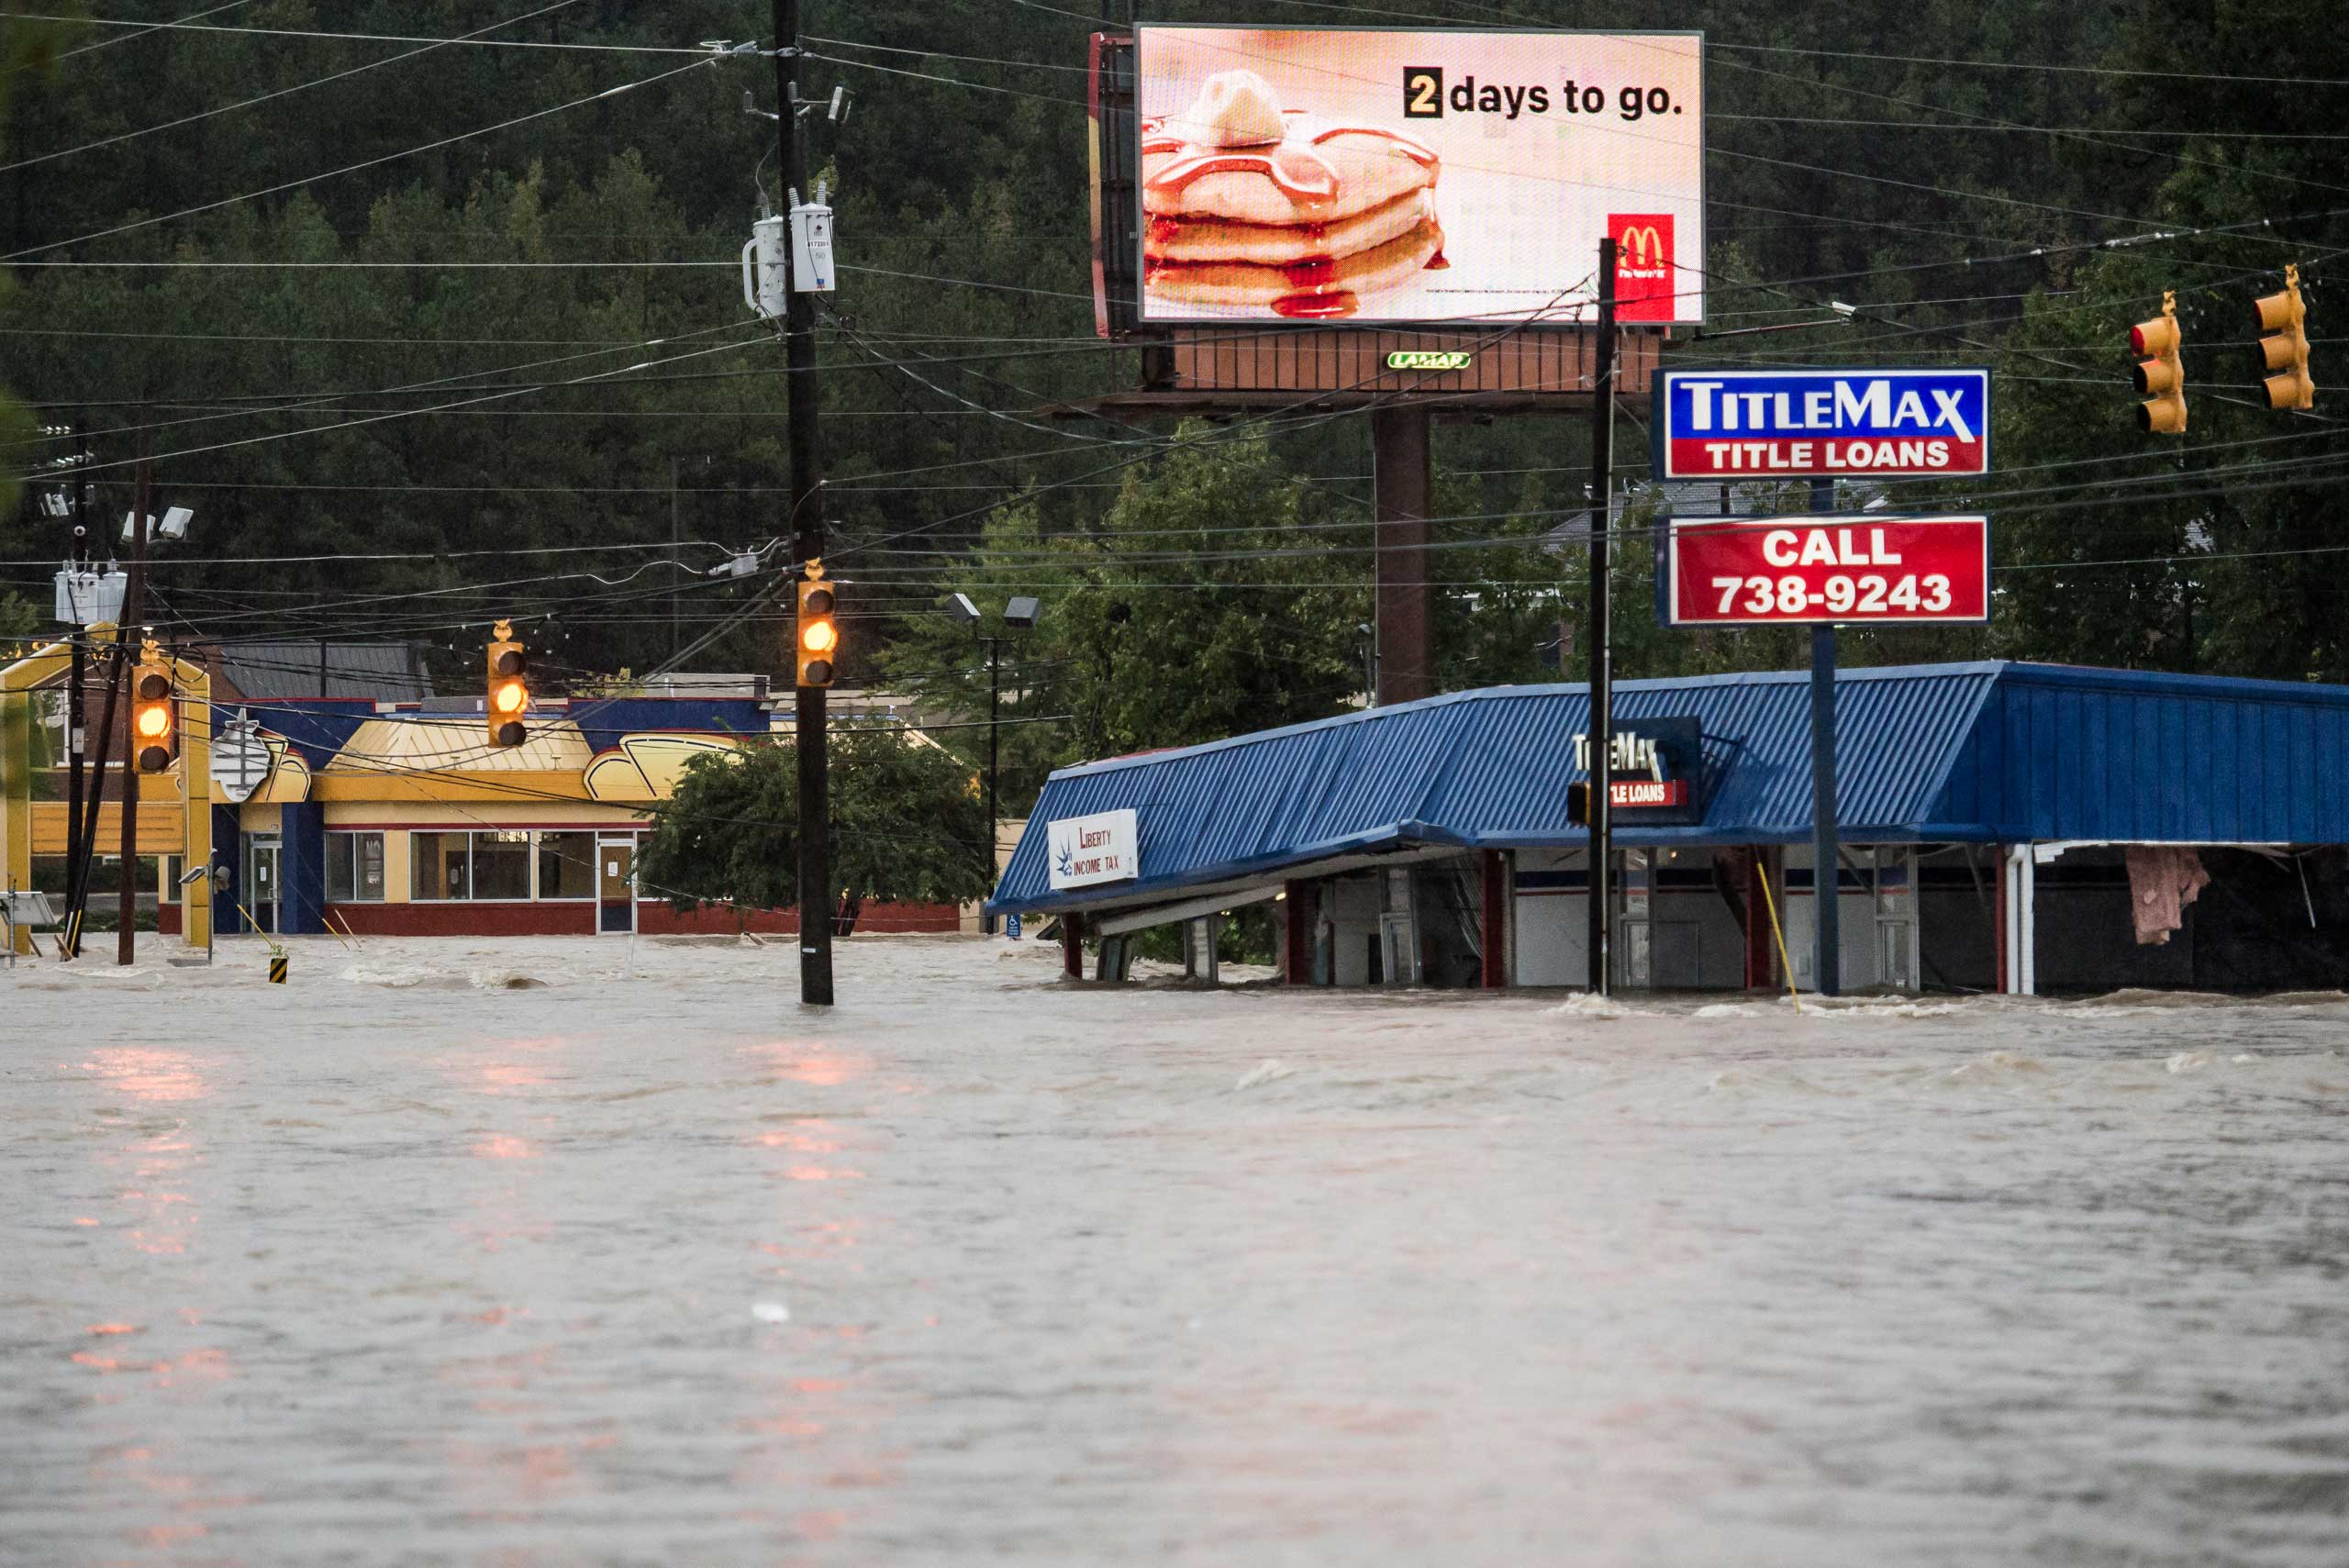 Flood waters rise around a title loan store on Garners Ferry Road in Columbia, S.C., Oct. 4, 2015.